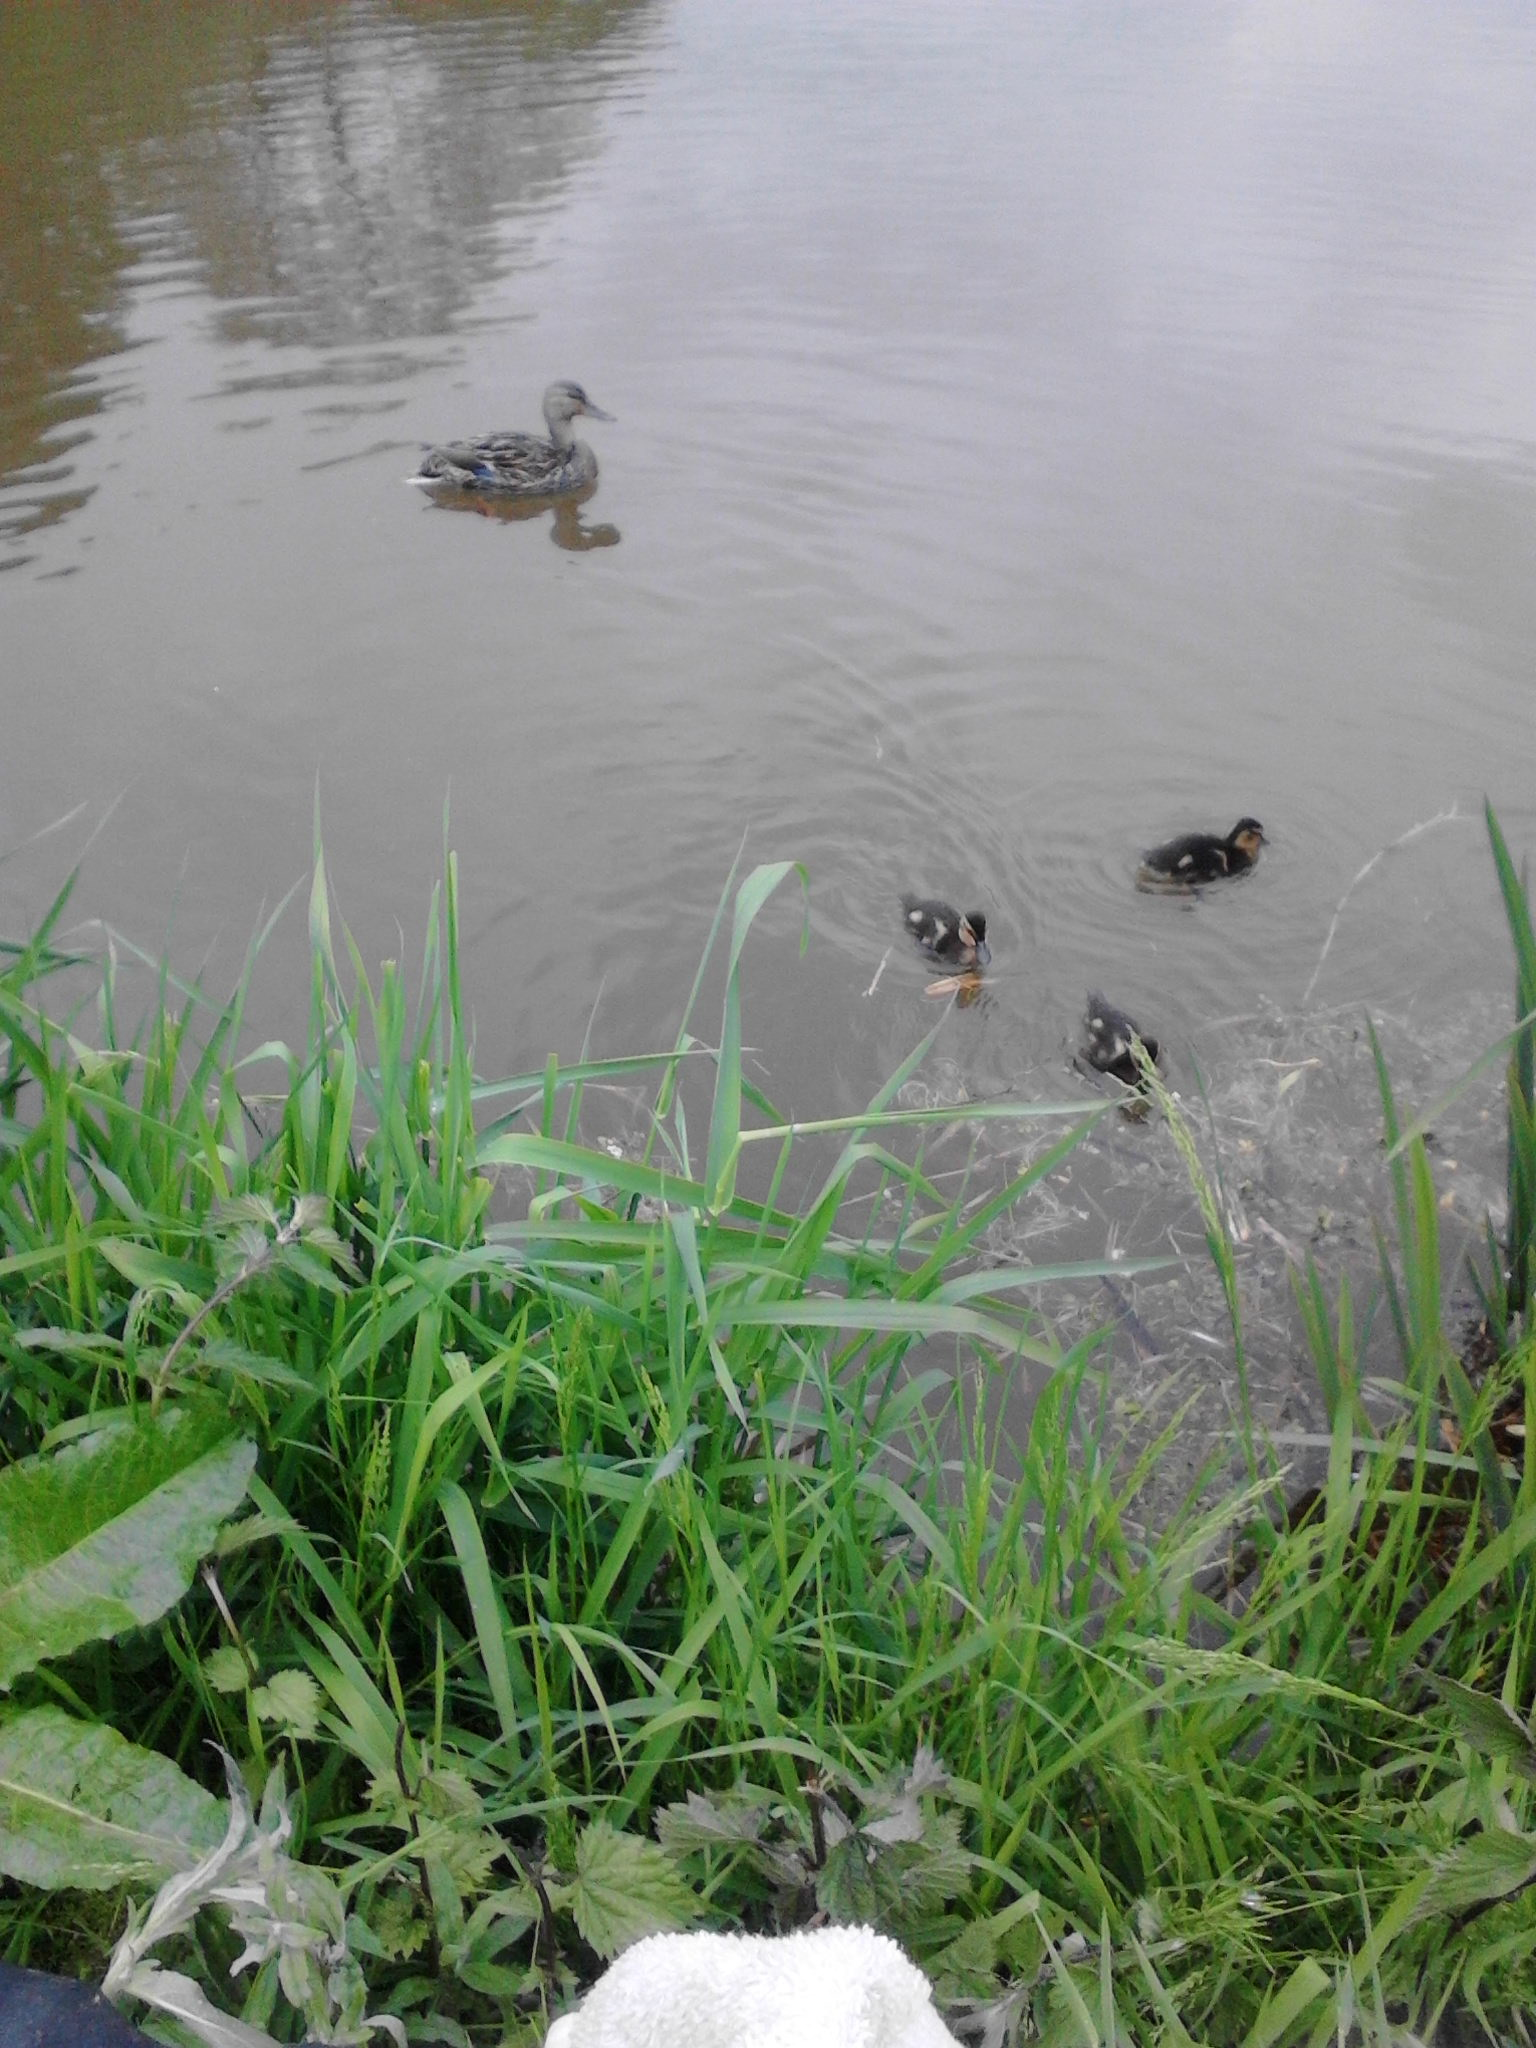 Three pictures taken by Steve Weatherer two 3lb 8oz bream and new baby ducks.